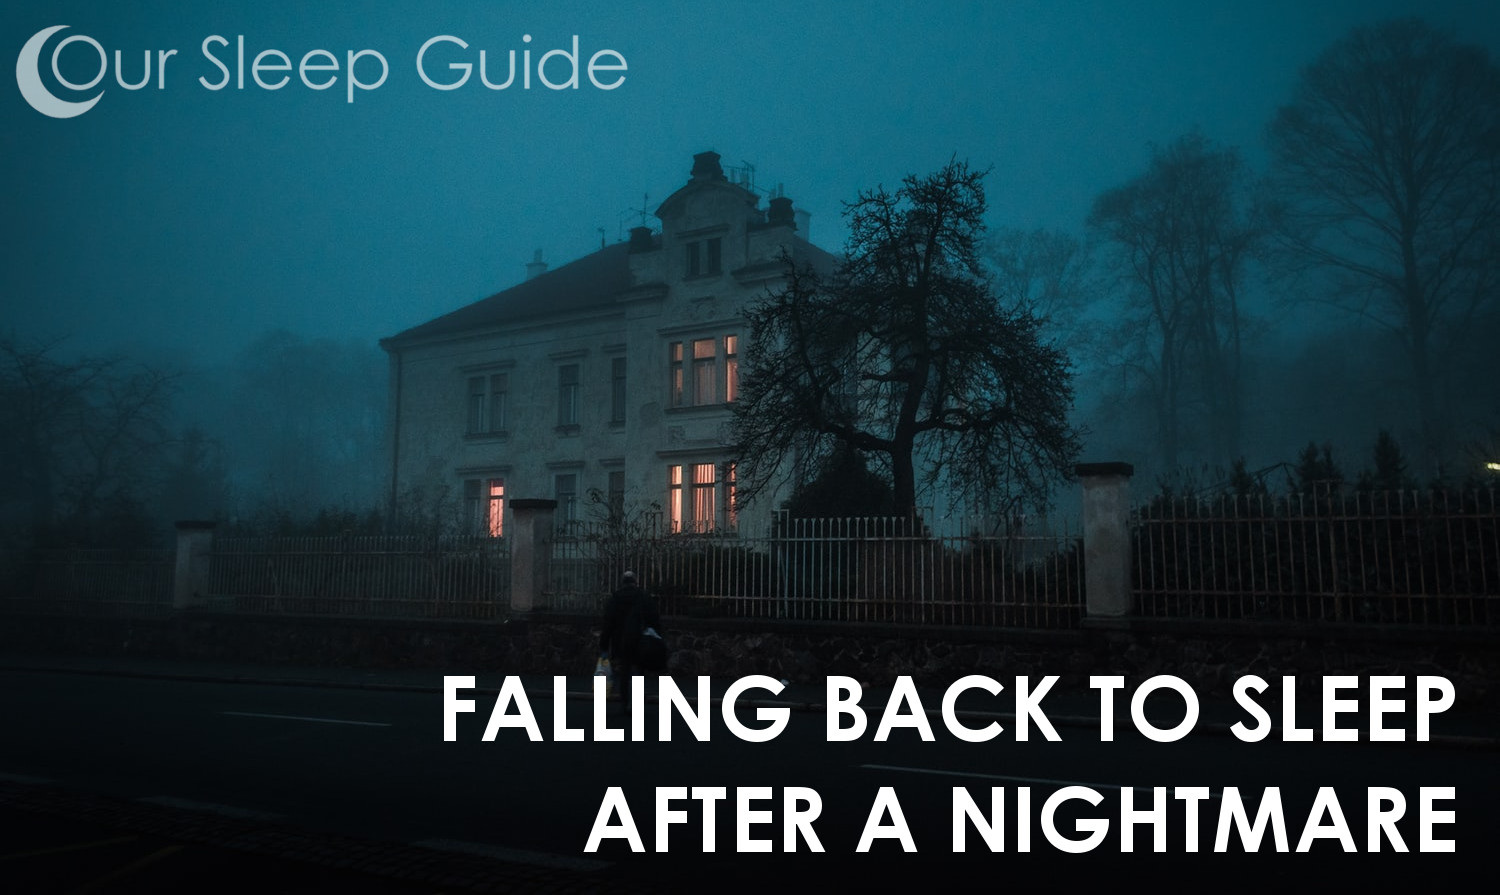 How To Go Back To Sleep After a Nightmare